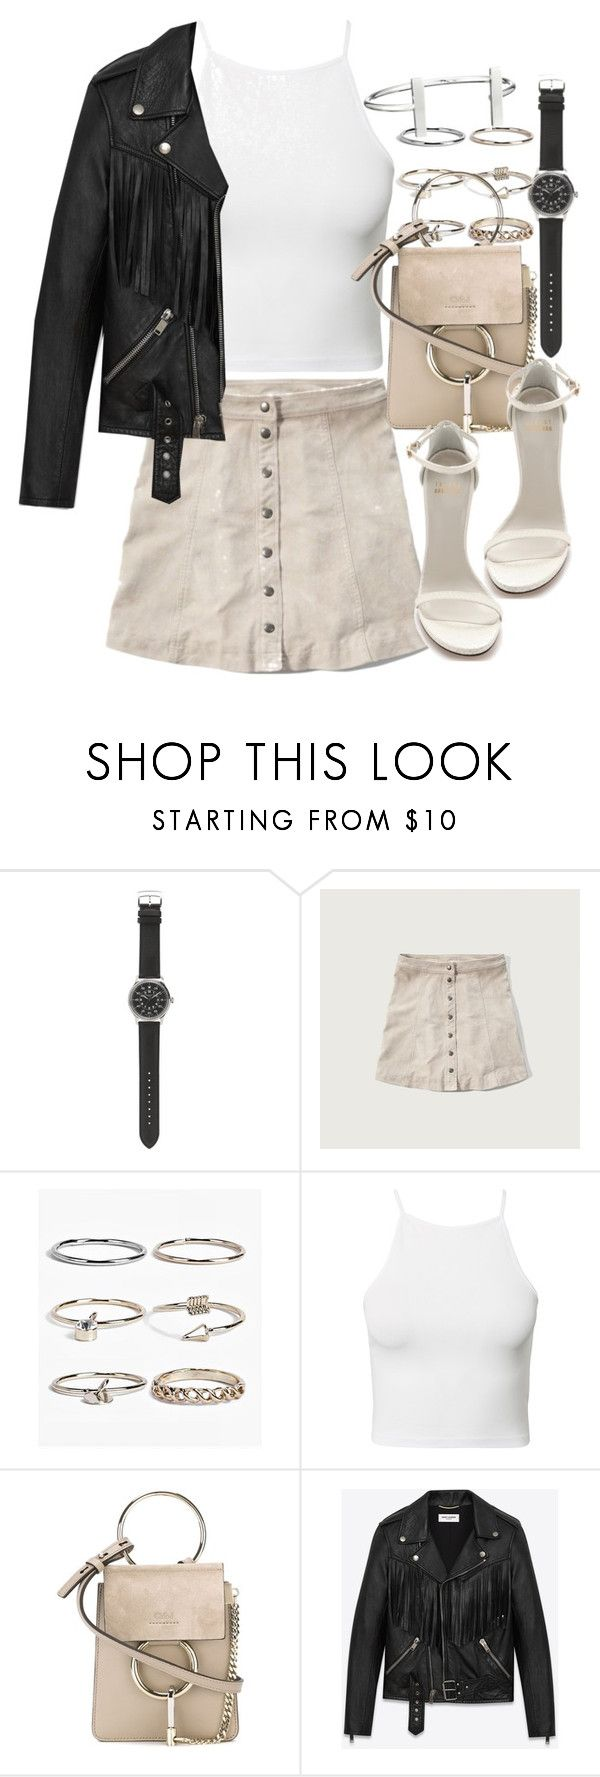 """Untitled #1834"" by victoriamk ❤ liked on Polyvore featuring J.Crew, Abercrombie & Fitch, Boohoo, Estradeur, Chloé, Stuart Weitzman, Yves Saint Laurent and French Connection"